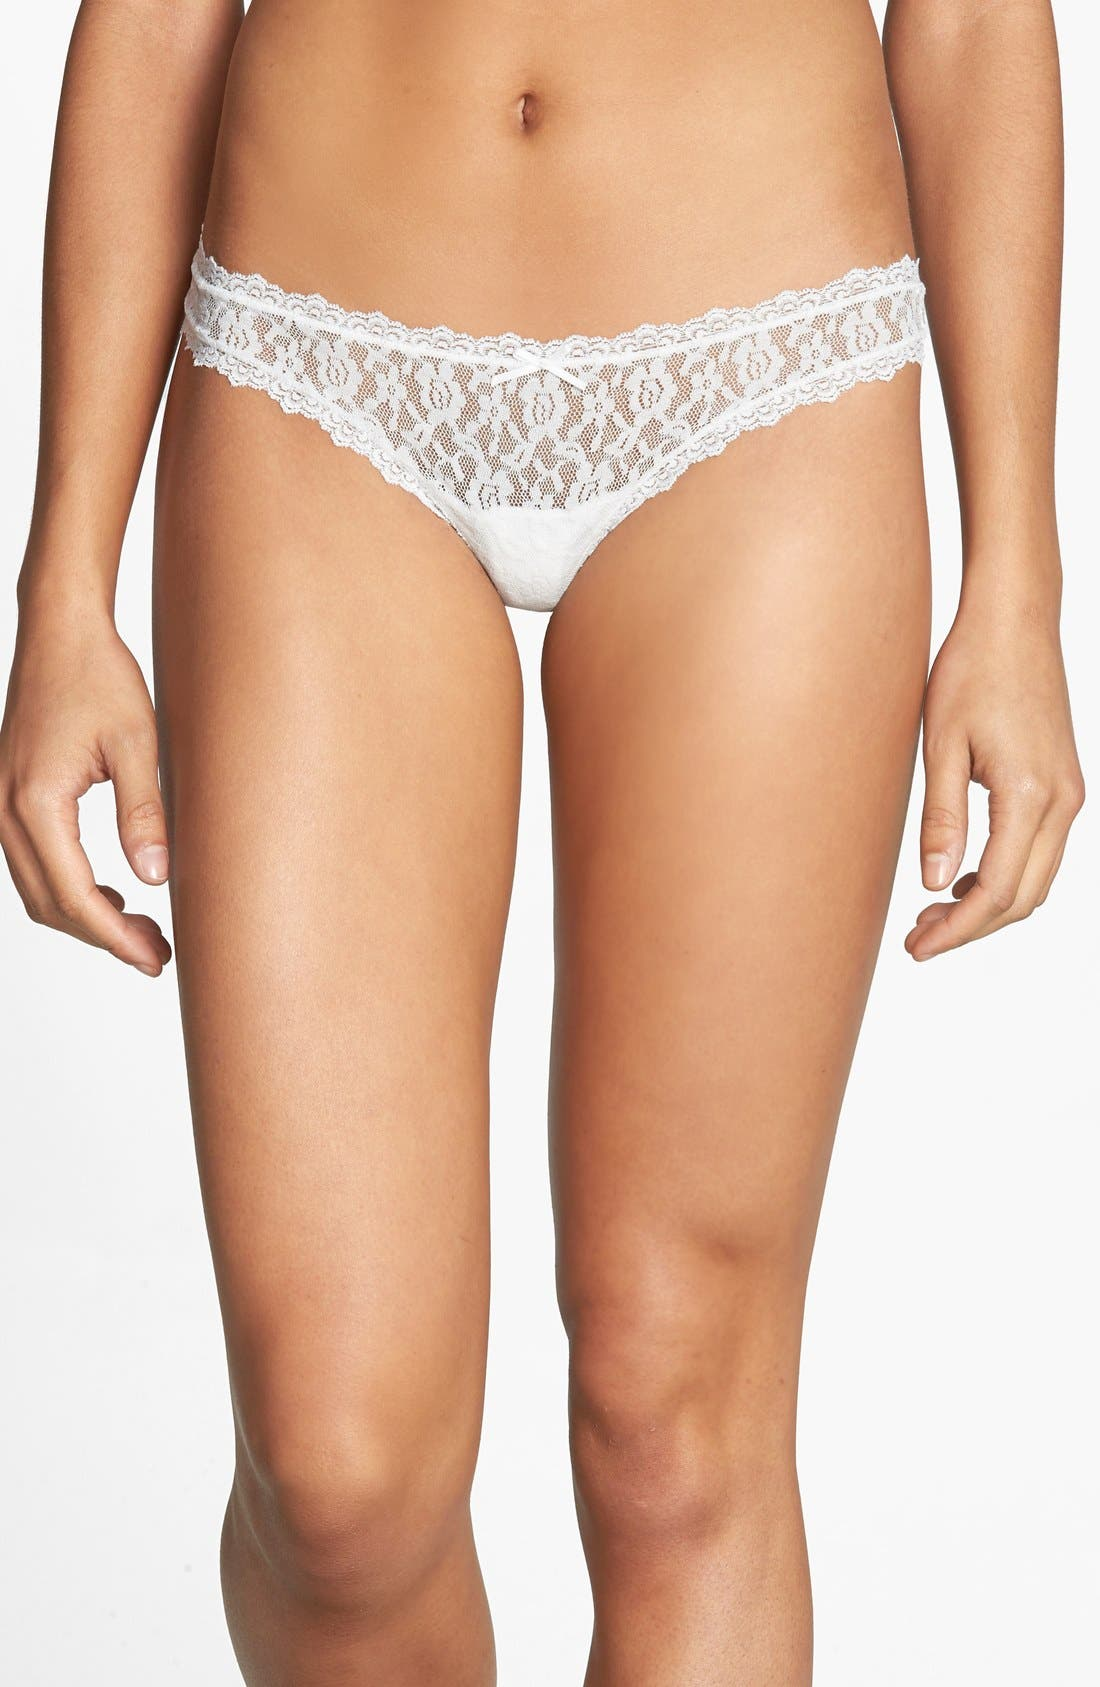 Alternate Image 1 Selected - Free People 'Dreams Do Come True' Stretch Lace Thong